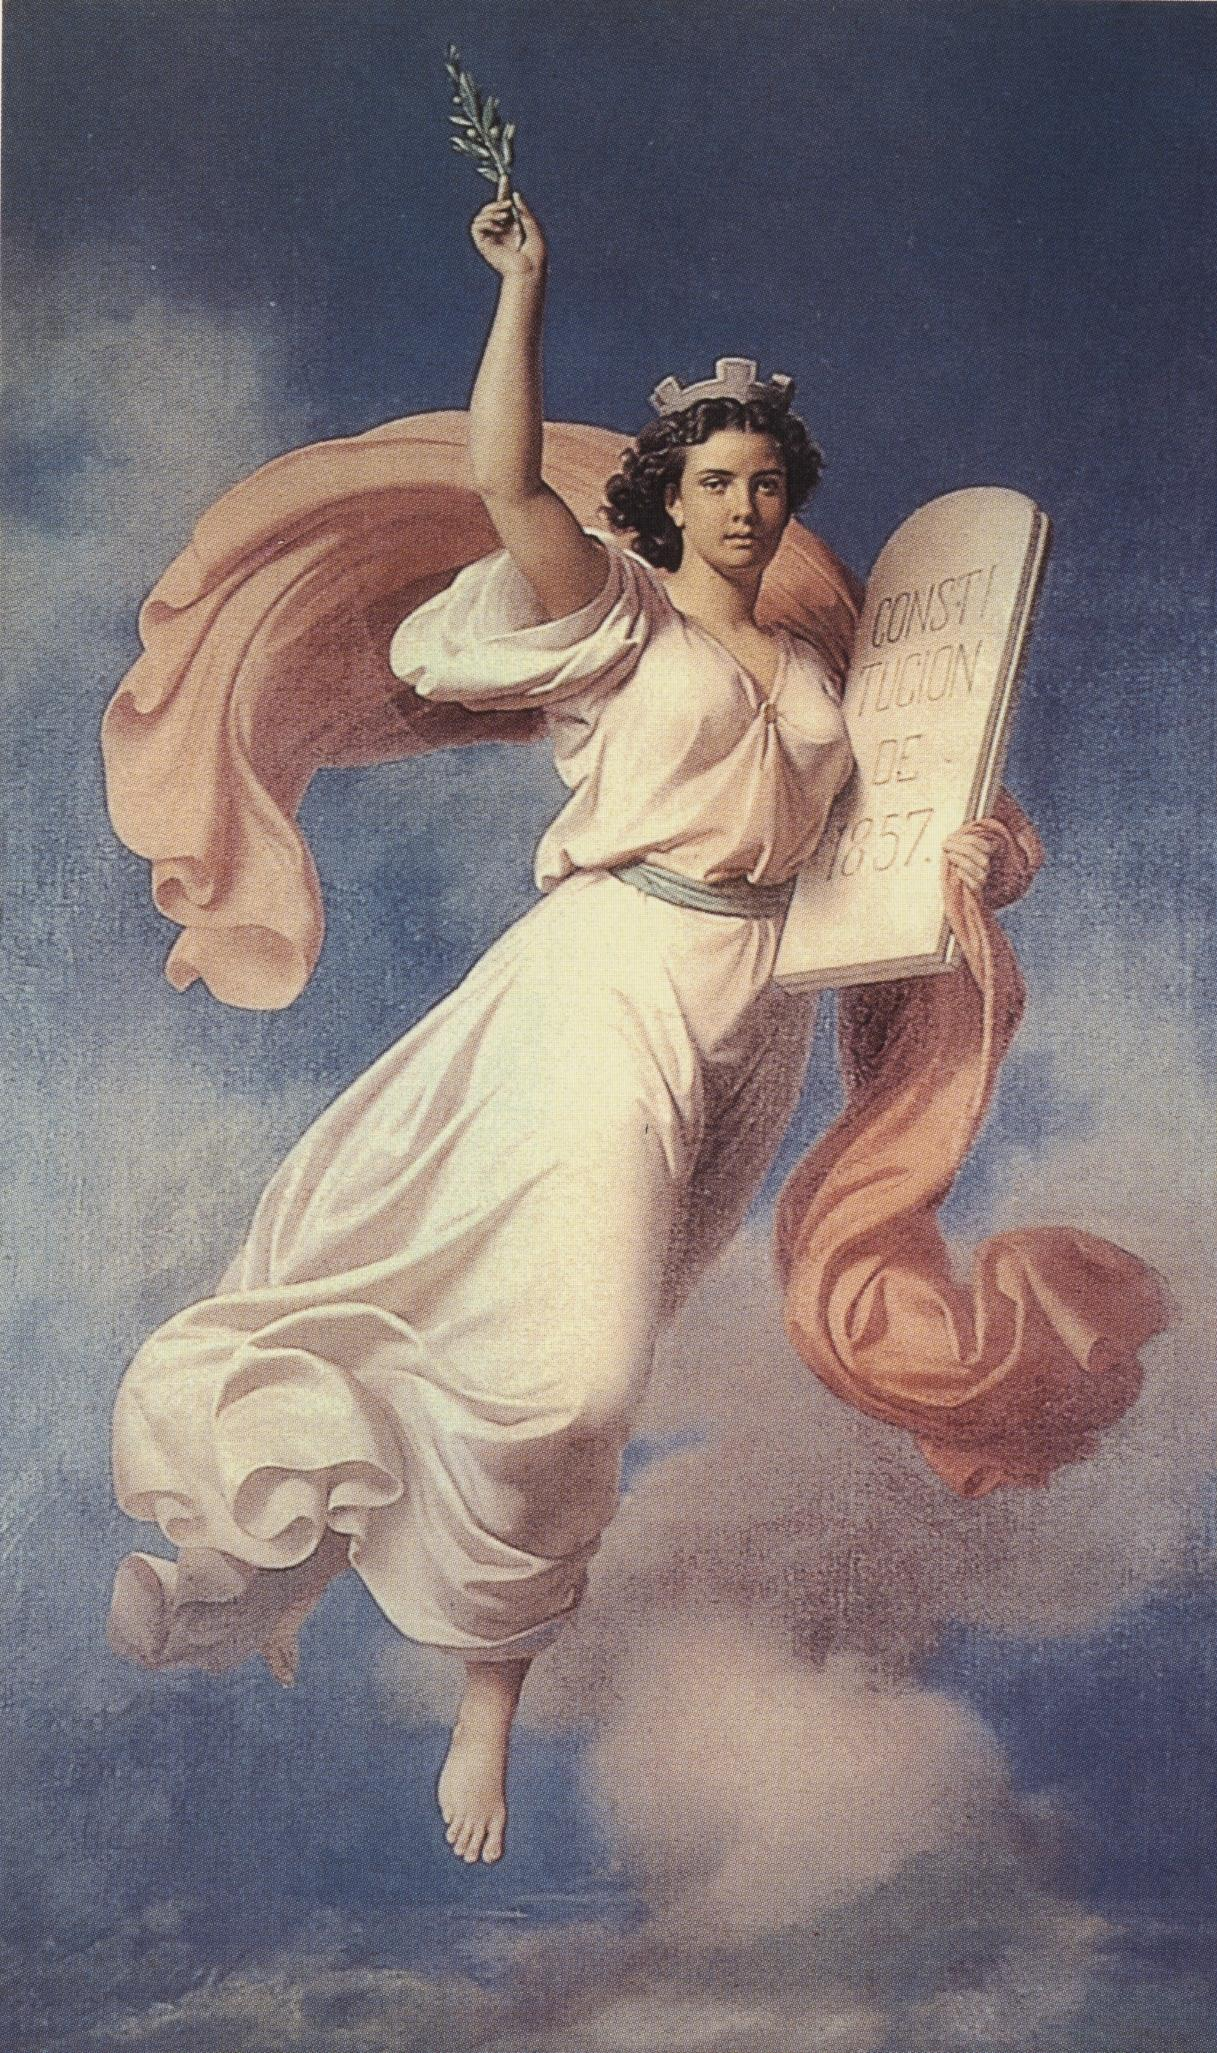 6d - Columbia - Liberty, goddess assisting in the origination of another new country